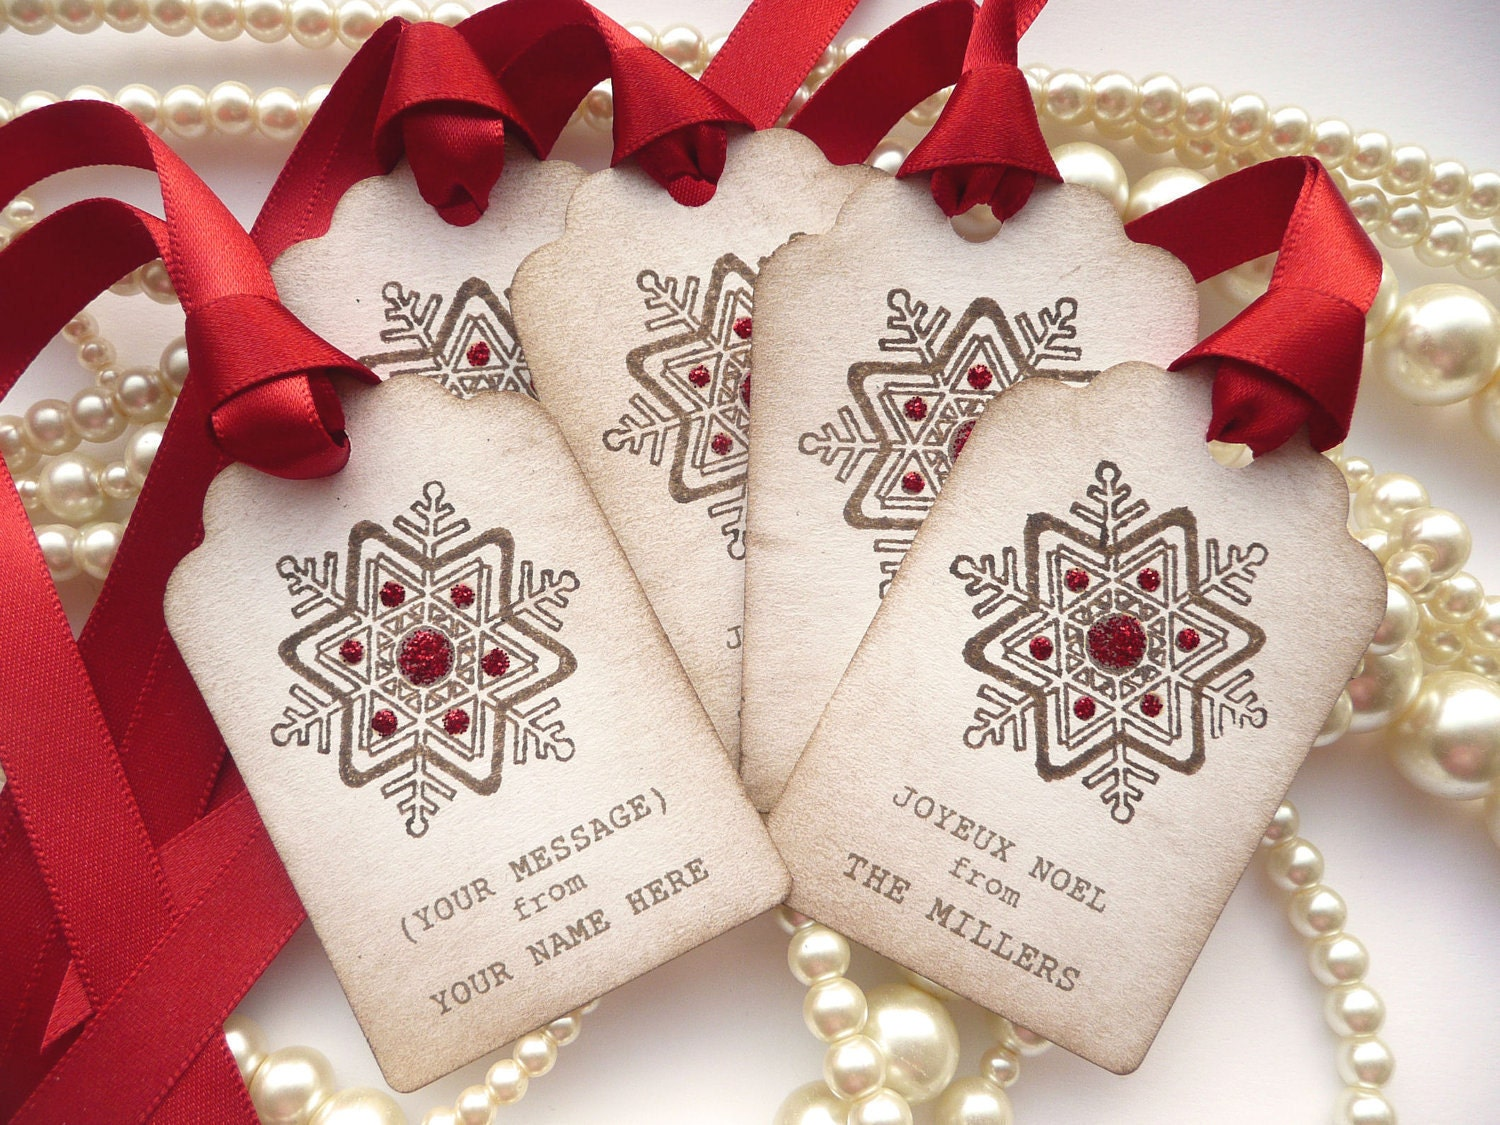 Custom Christmas Holiday Tags - Personalised with your family name - Vintage Style Set of 20 - Snowflakes and Glitter - Bright Red Ribbon - amaretto